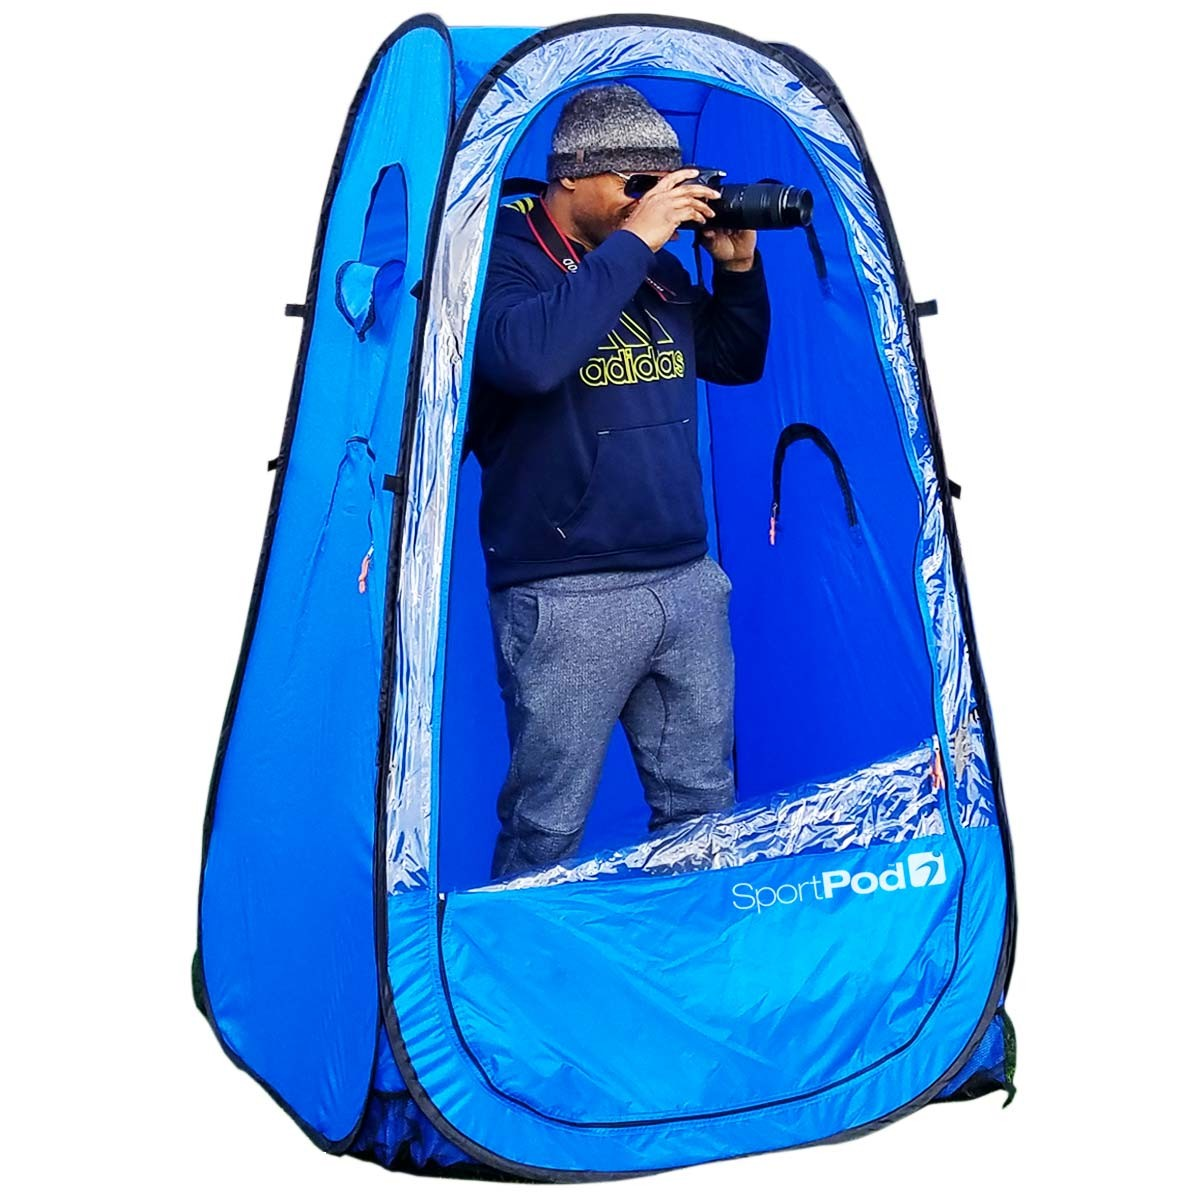 Pop Up Shelter Team : Actionpod™ undercover™ all weather sportpod™ pop up chair tent